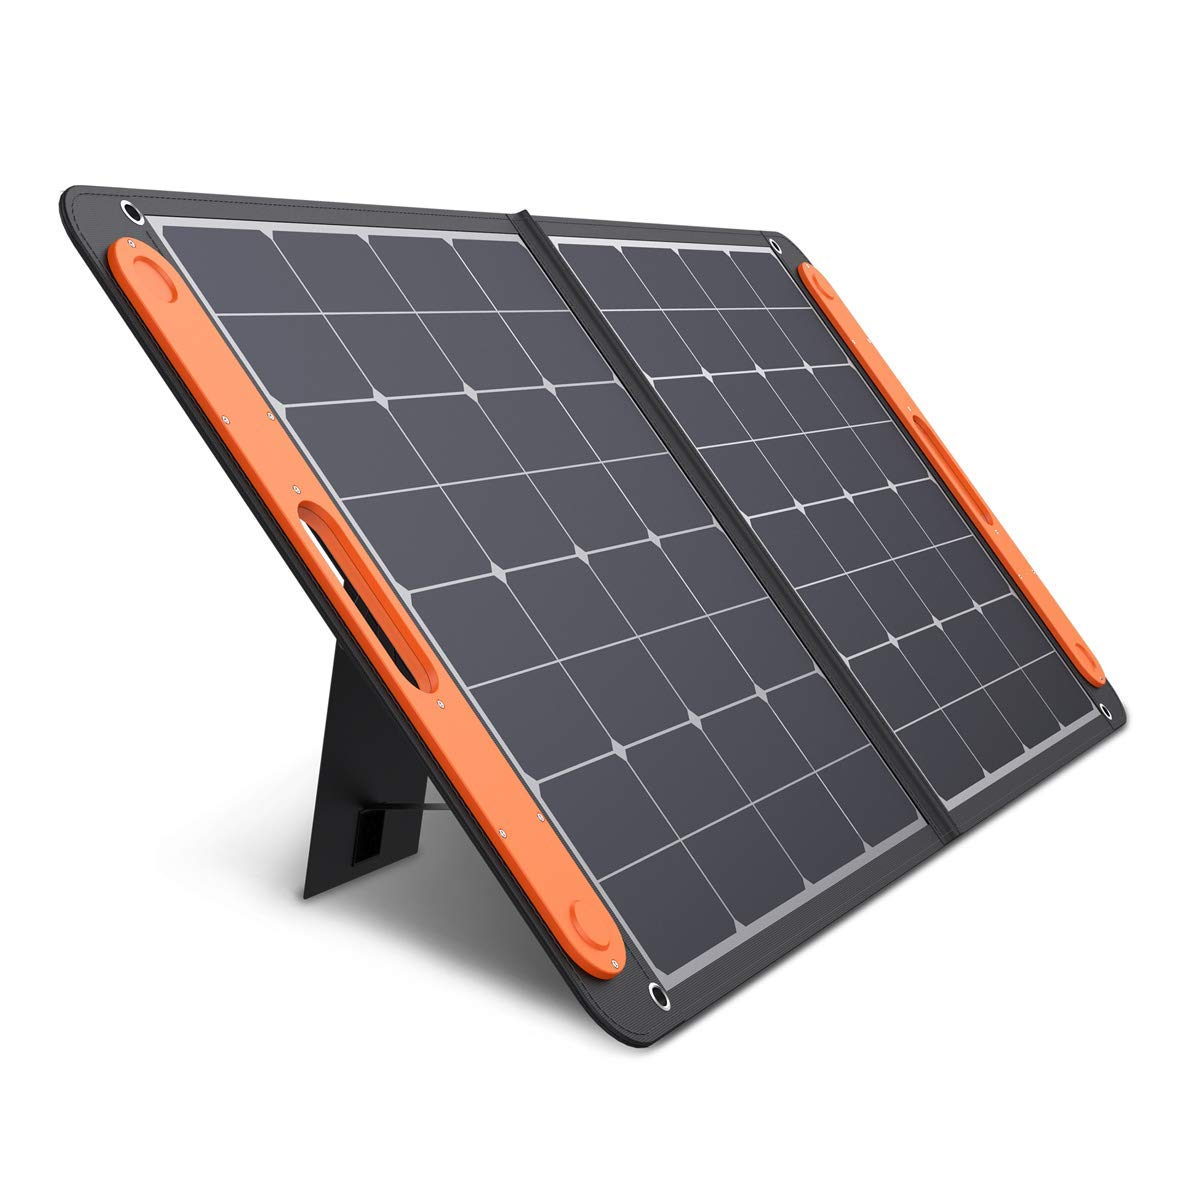 Jackery SolarSaga 100W Portable Solar Panel for Explorer 160/240/500 Power Station, Foldable US Solar Cell Solar Charger with USB Outputs for Phones (Can't Charge Explorer 440/ PowerPro) by Jackery